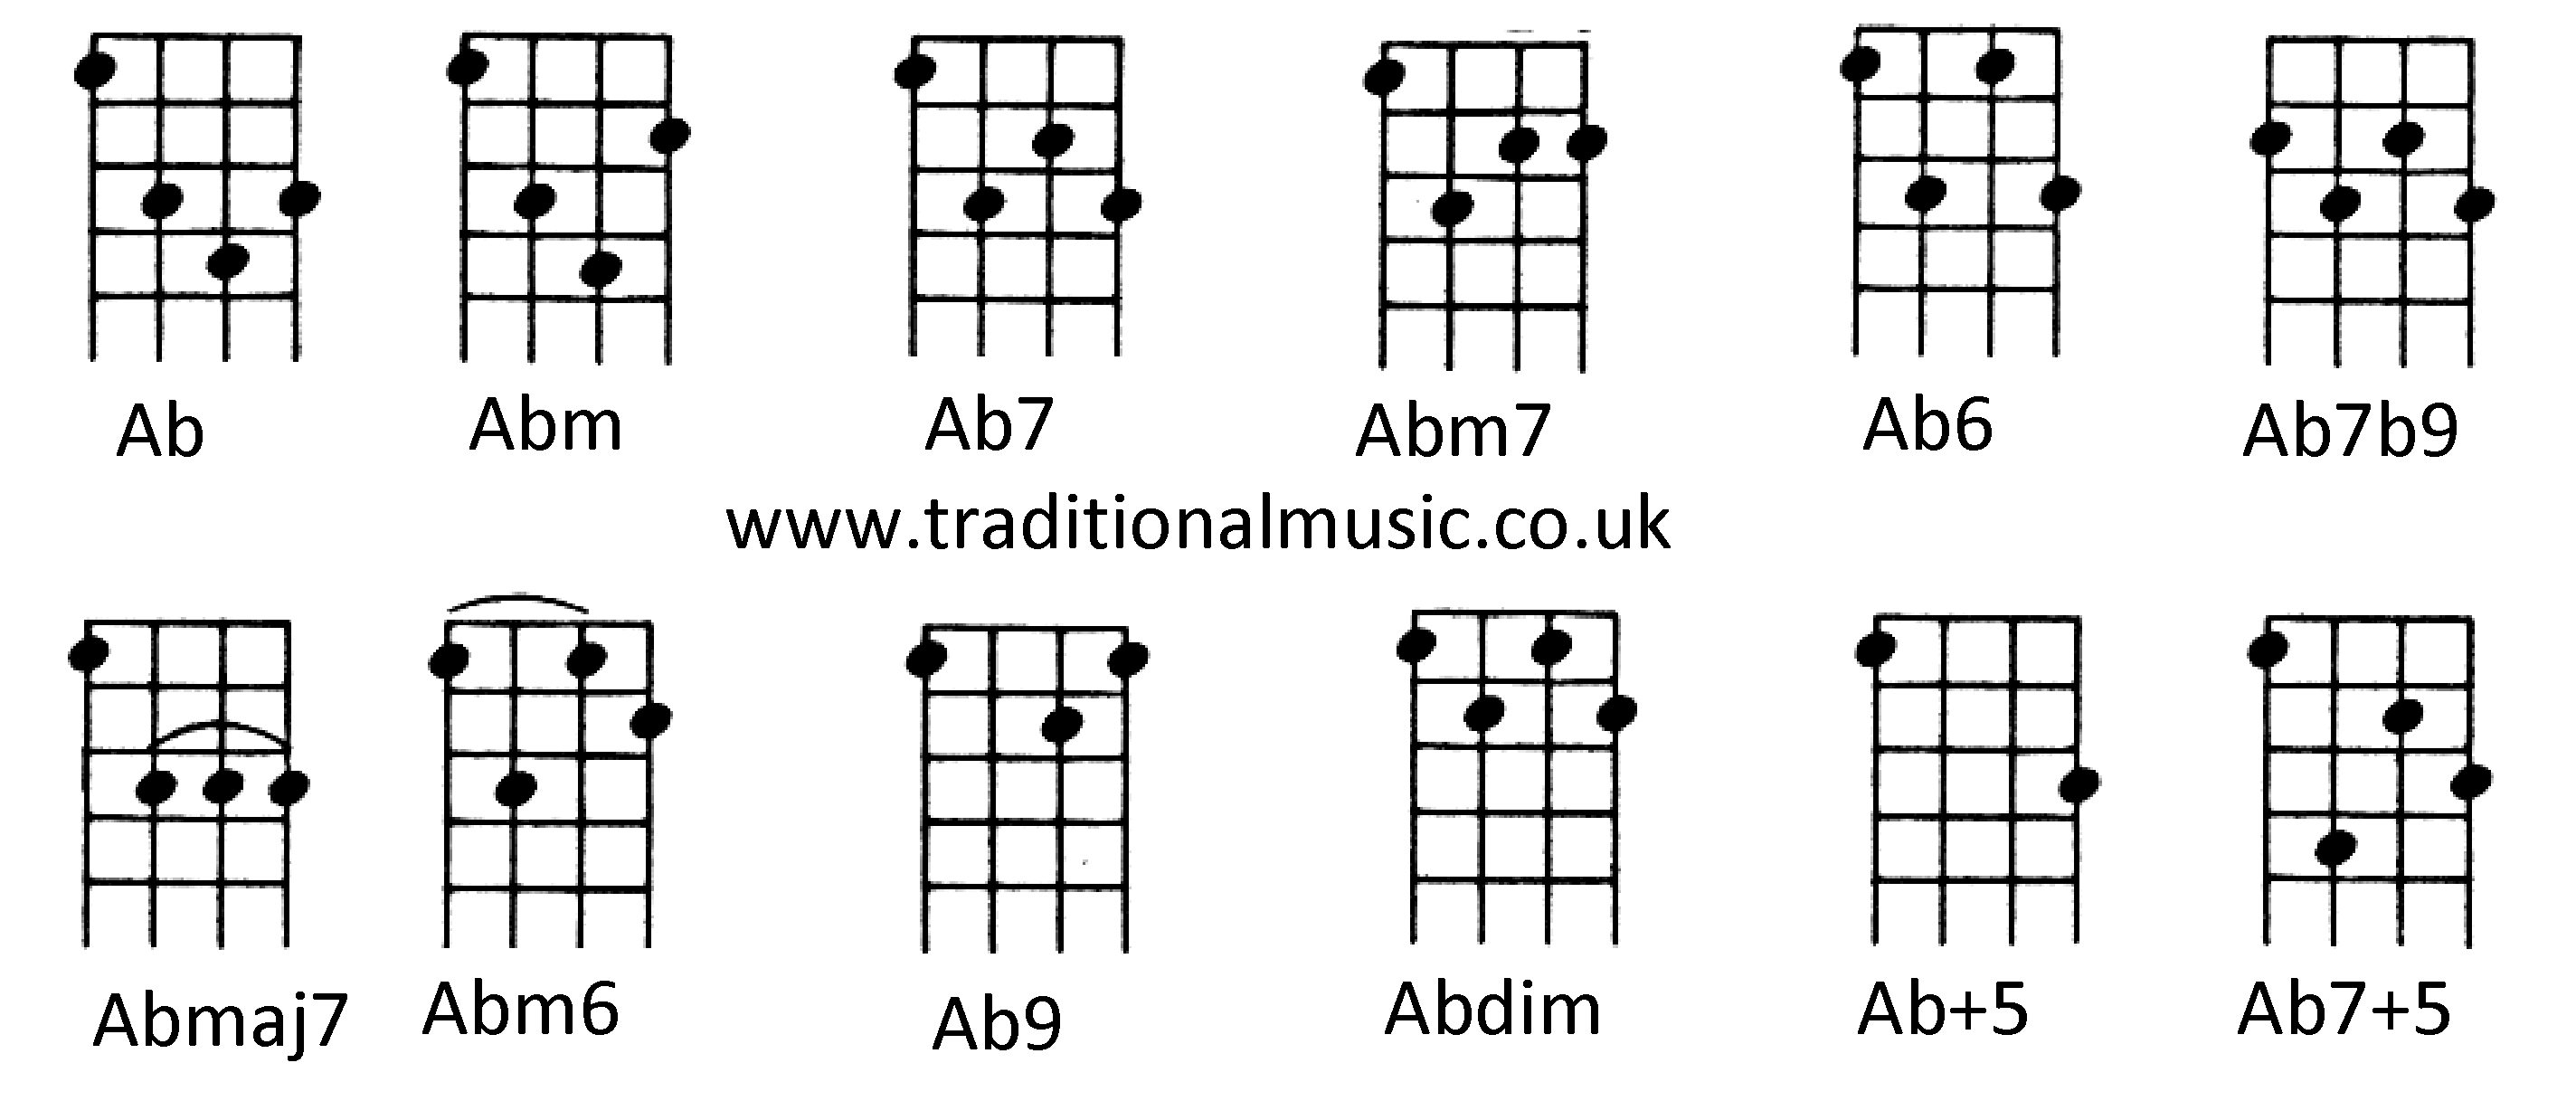 Ukulele Chord BM submited images.